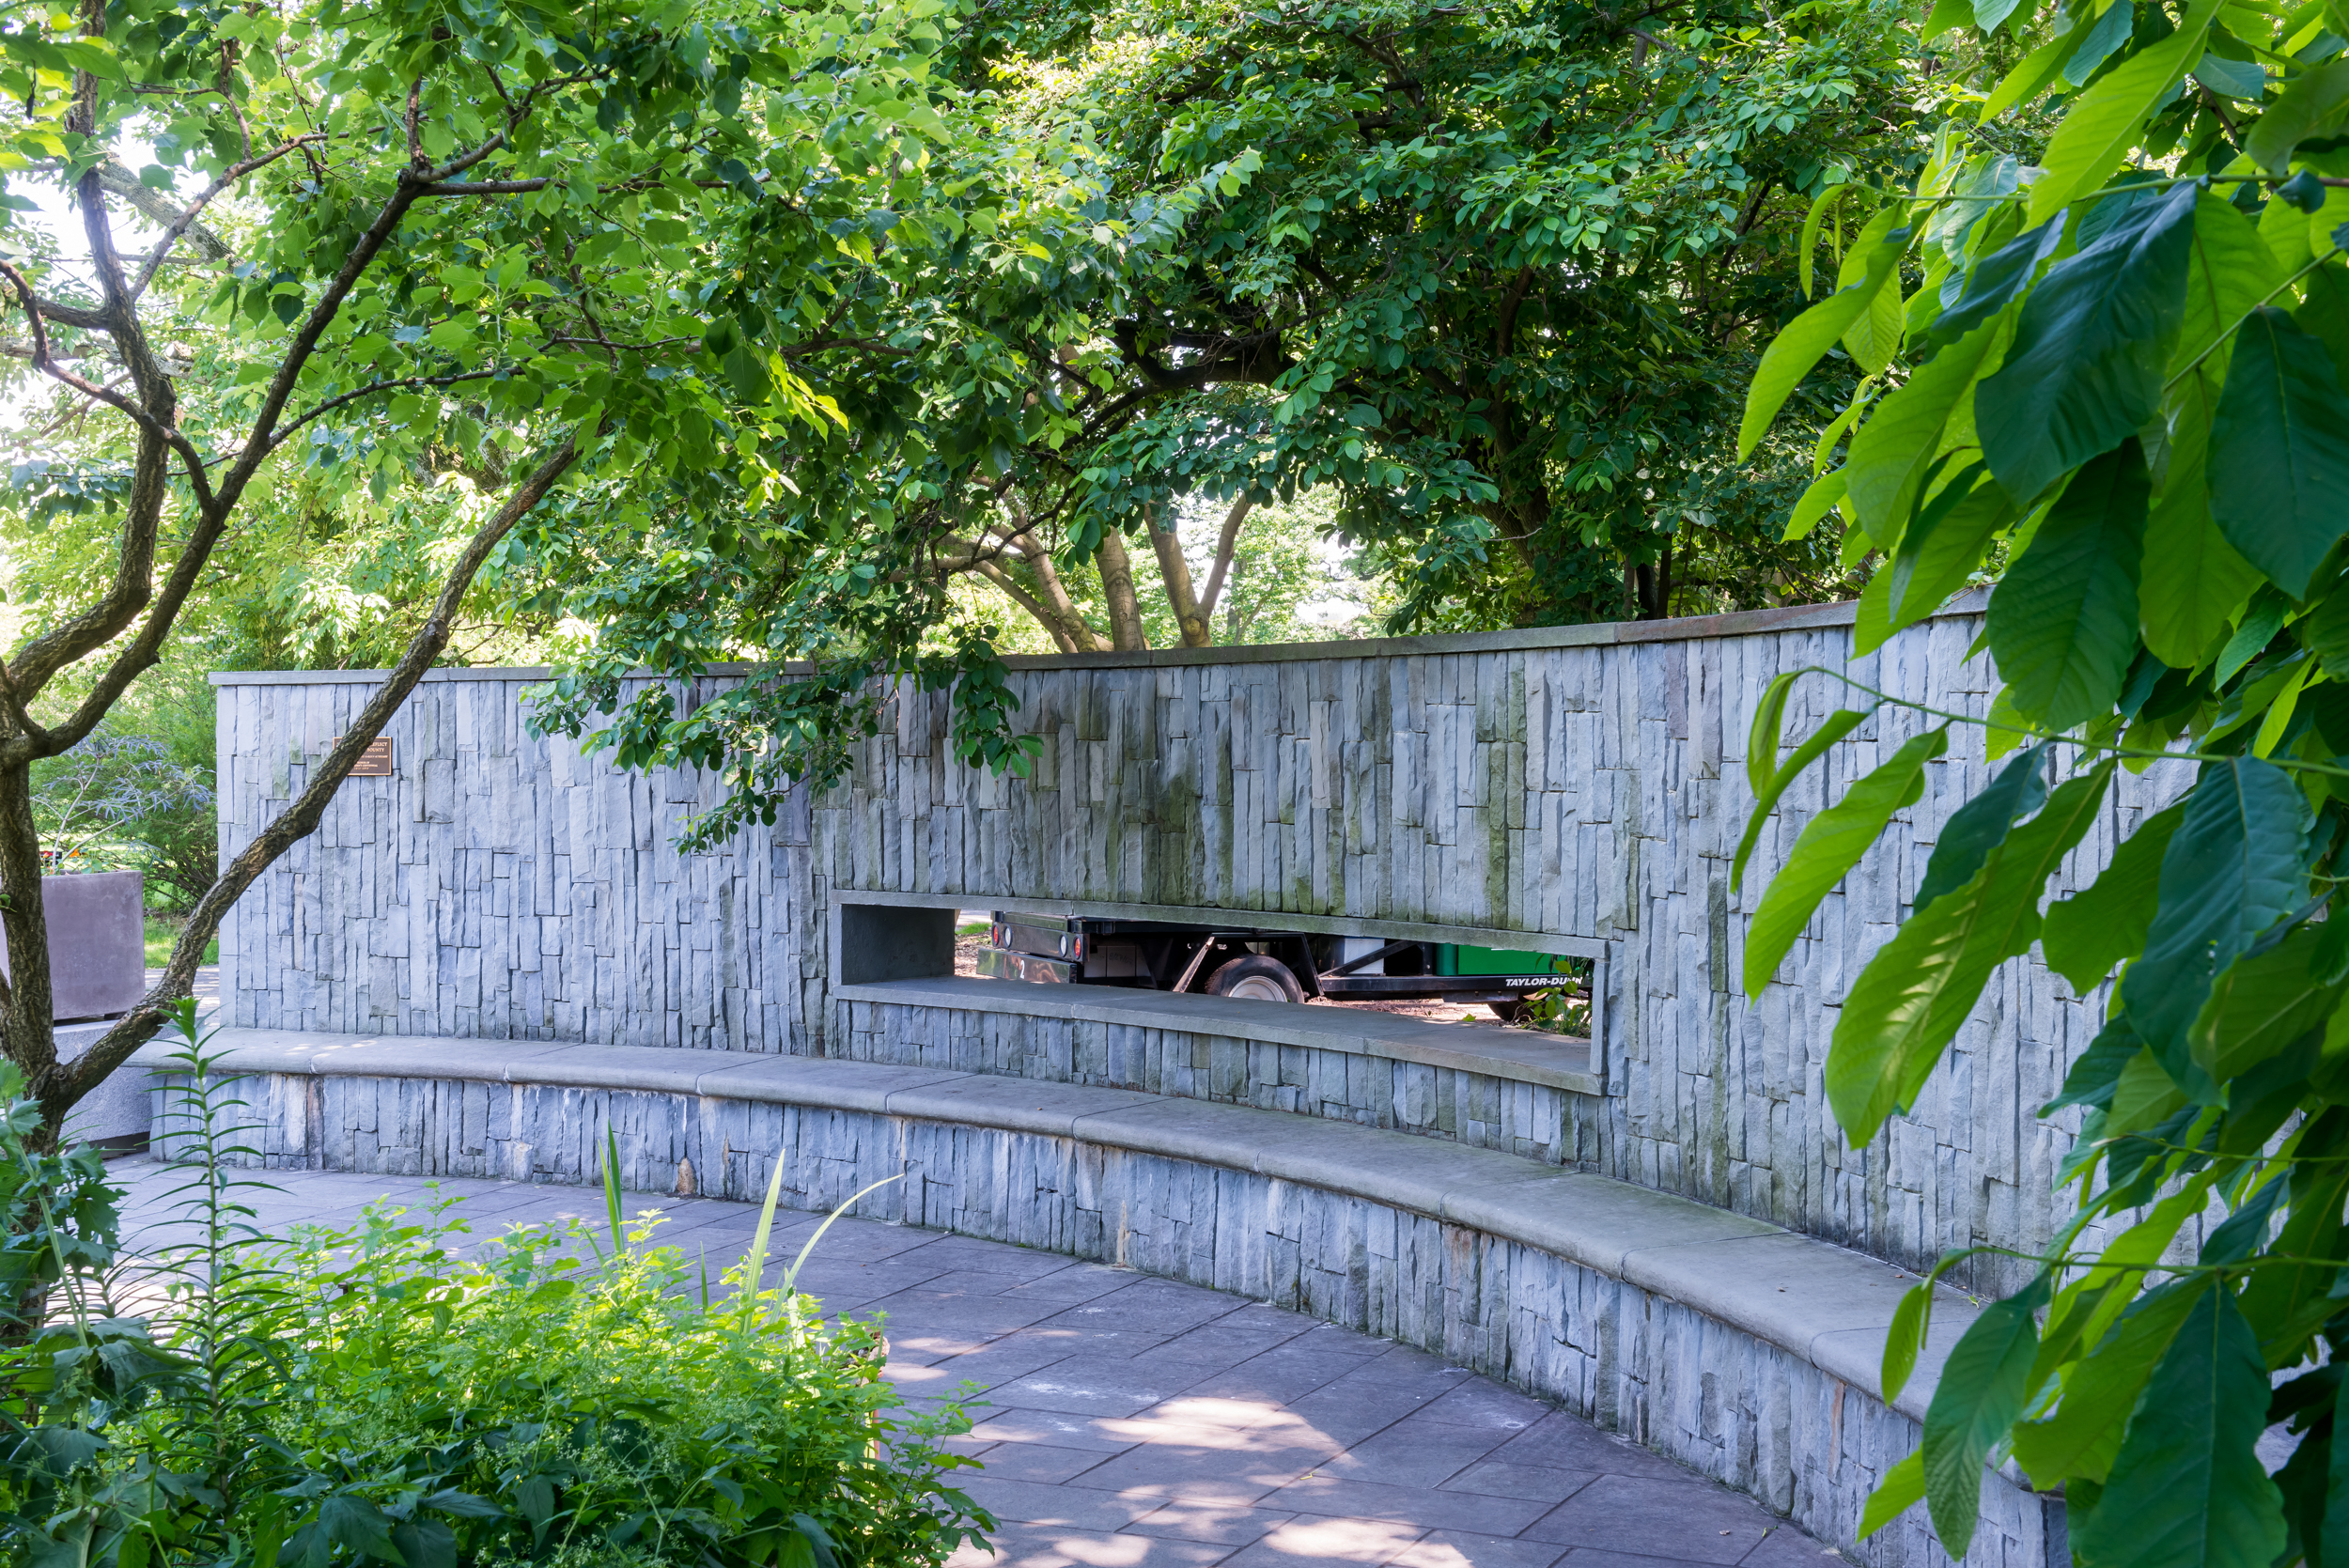 Curved bluestone wall with built-in seating bench and peekabo window